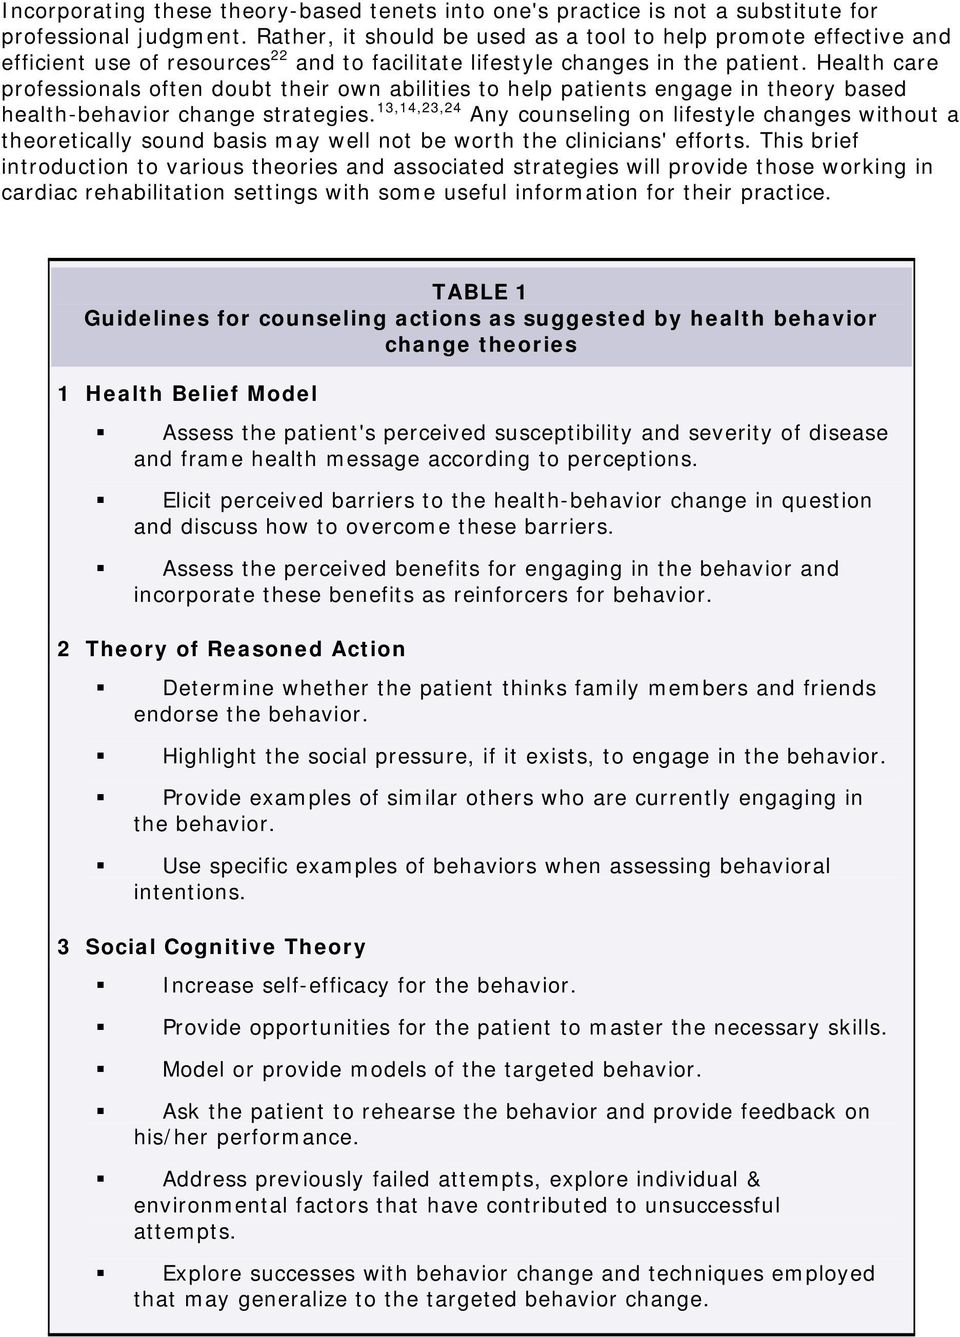 Health care professionals often doubt their own abilities to help patients engage in theory based health-behavior change strategies.